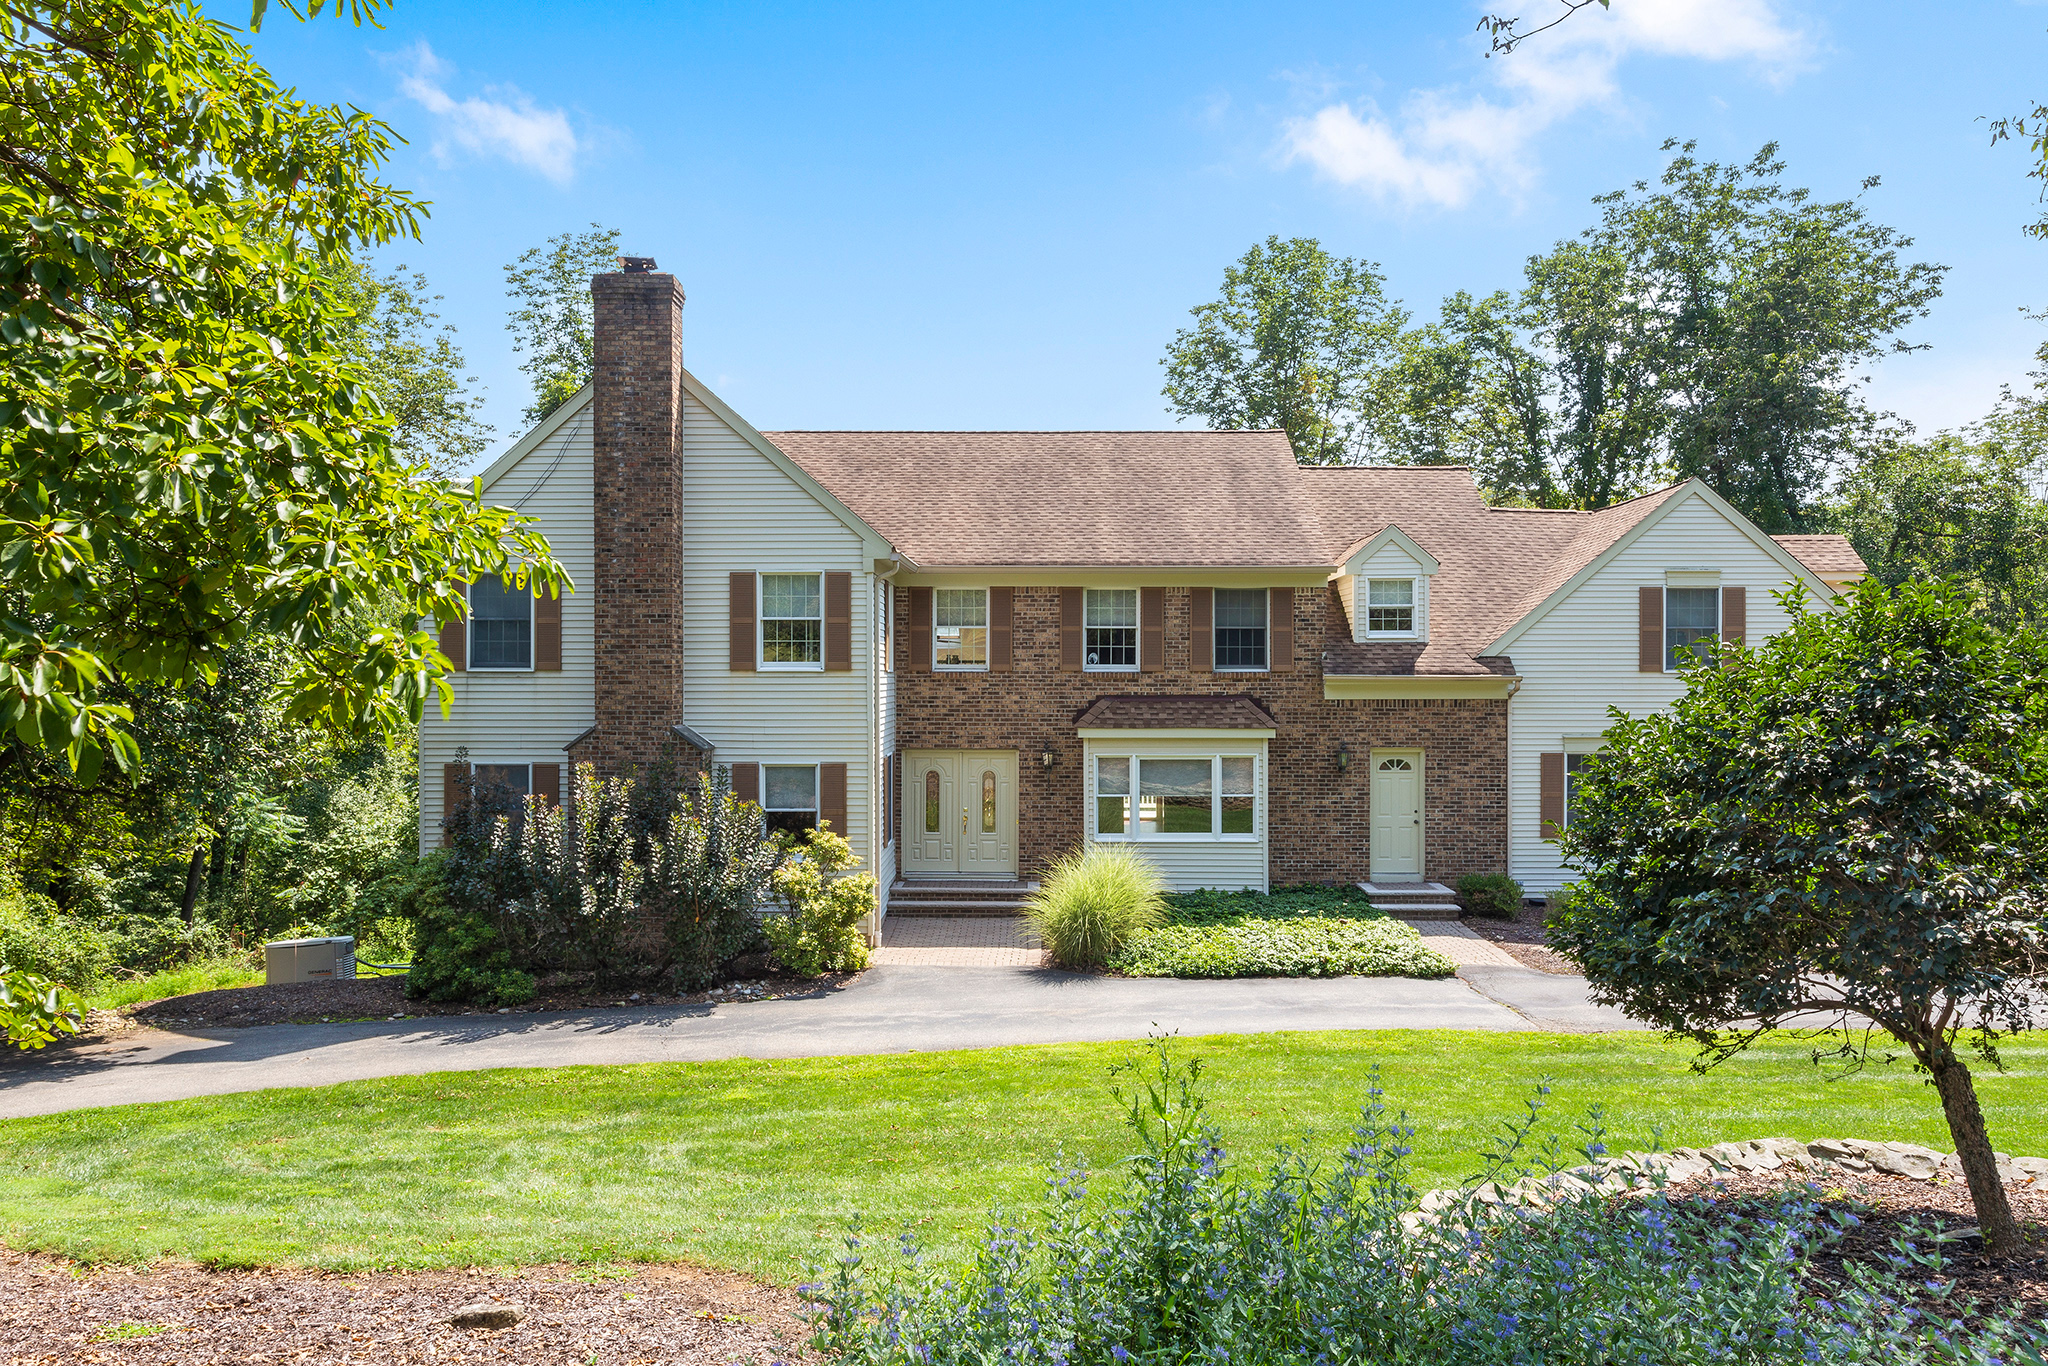 22 13 Bridge Hollow Road Tewksbury Township — front view 2